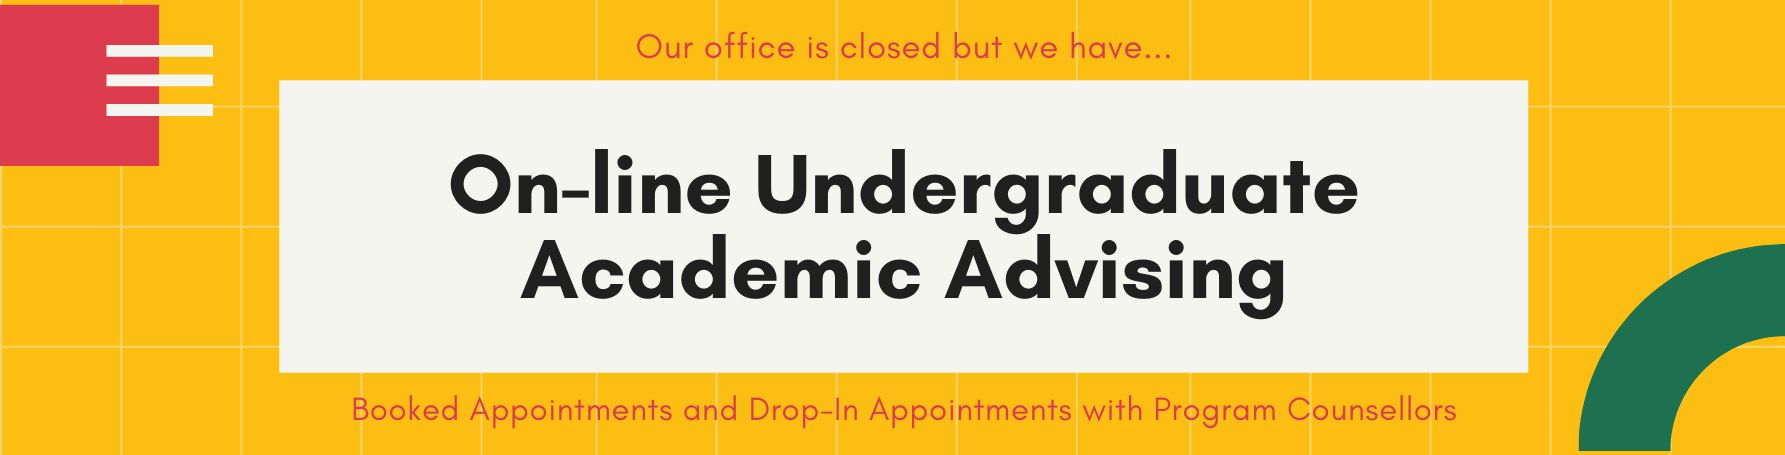 Our office is closed, but click the like below for online drop-in or appointments for academic advising